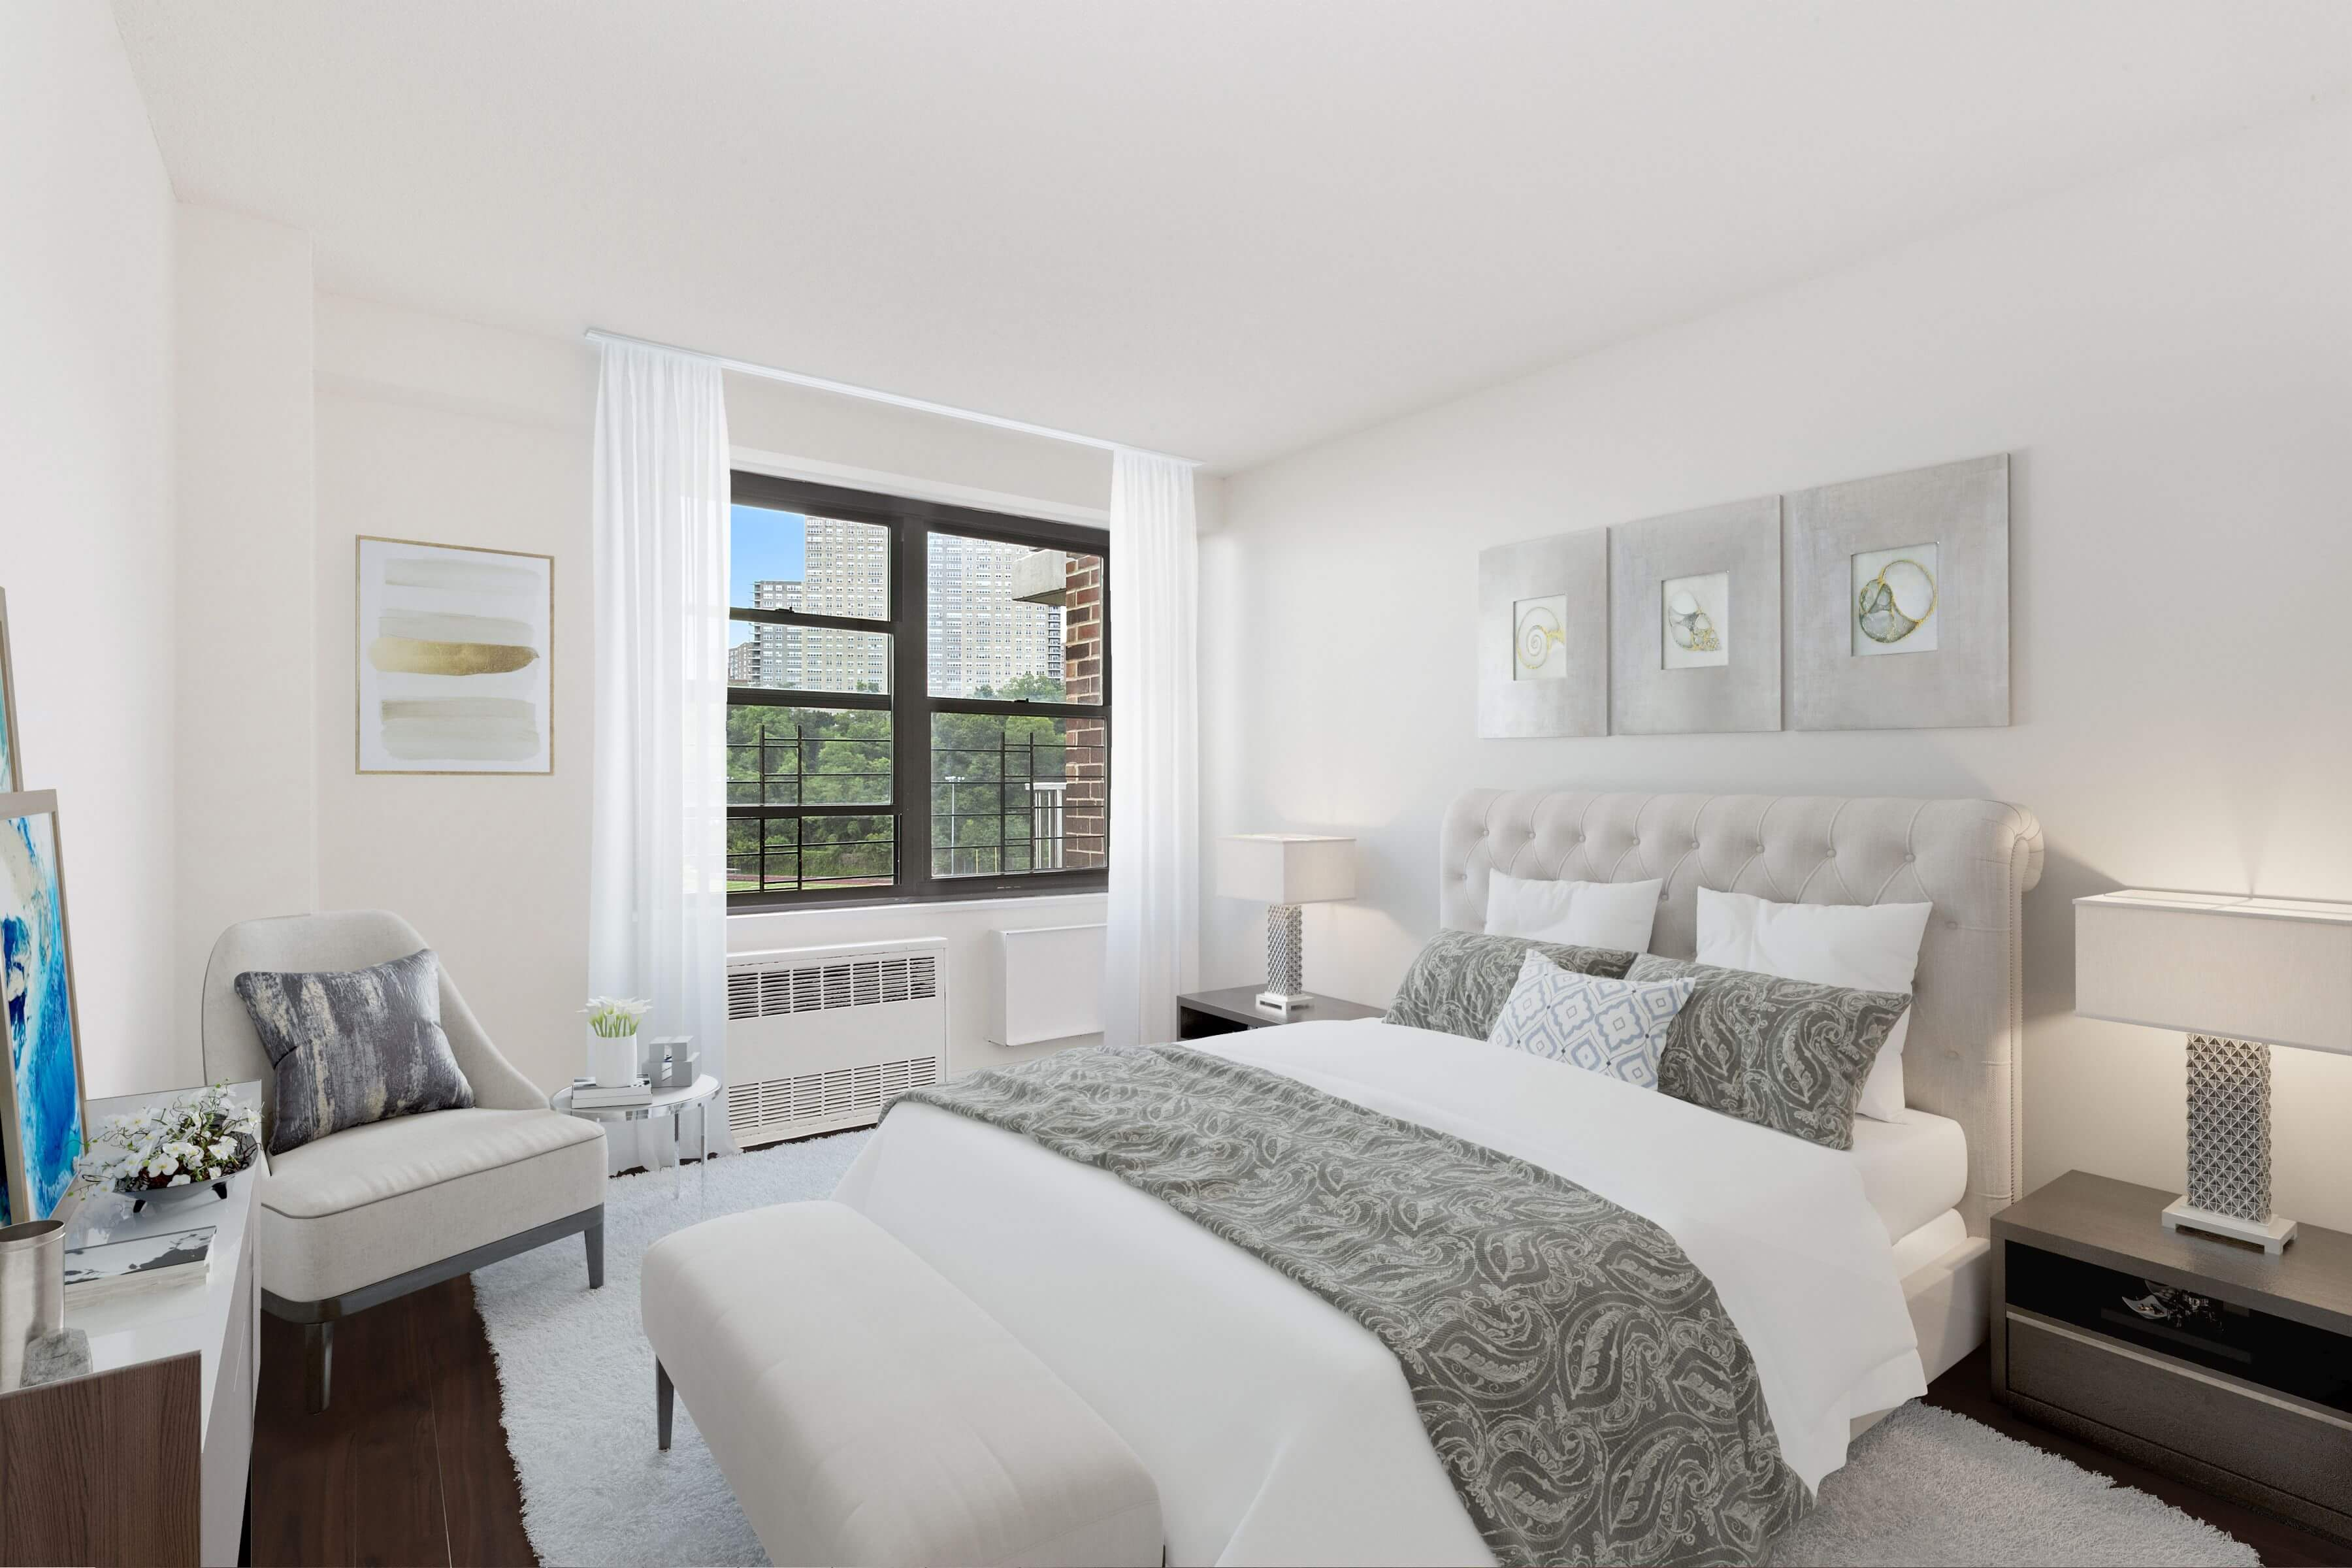 The Promenade Offers master suite that can accommodate king-size bedroom furniture, as seen here.